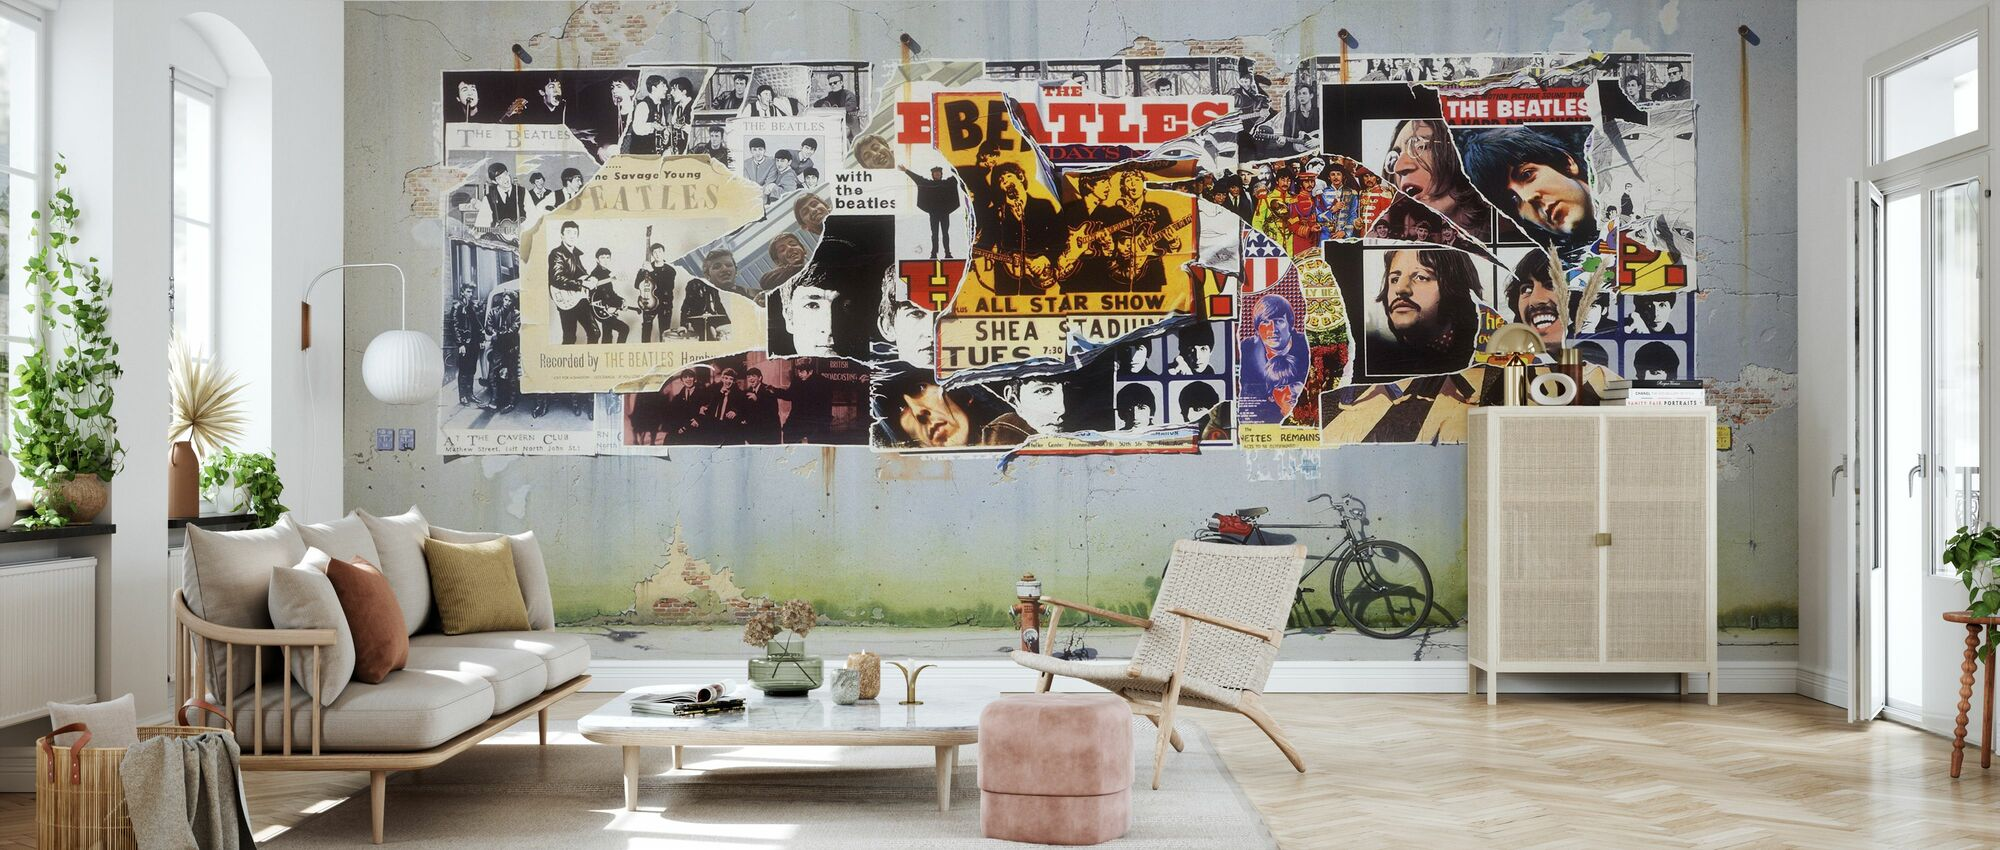 Beatles - Posters on Concrete Wall - Wallpaper - Living Room